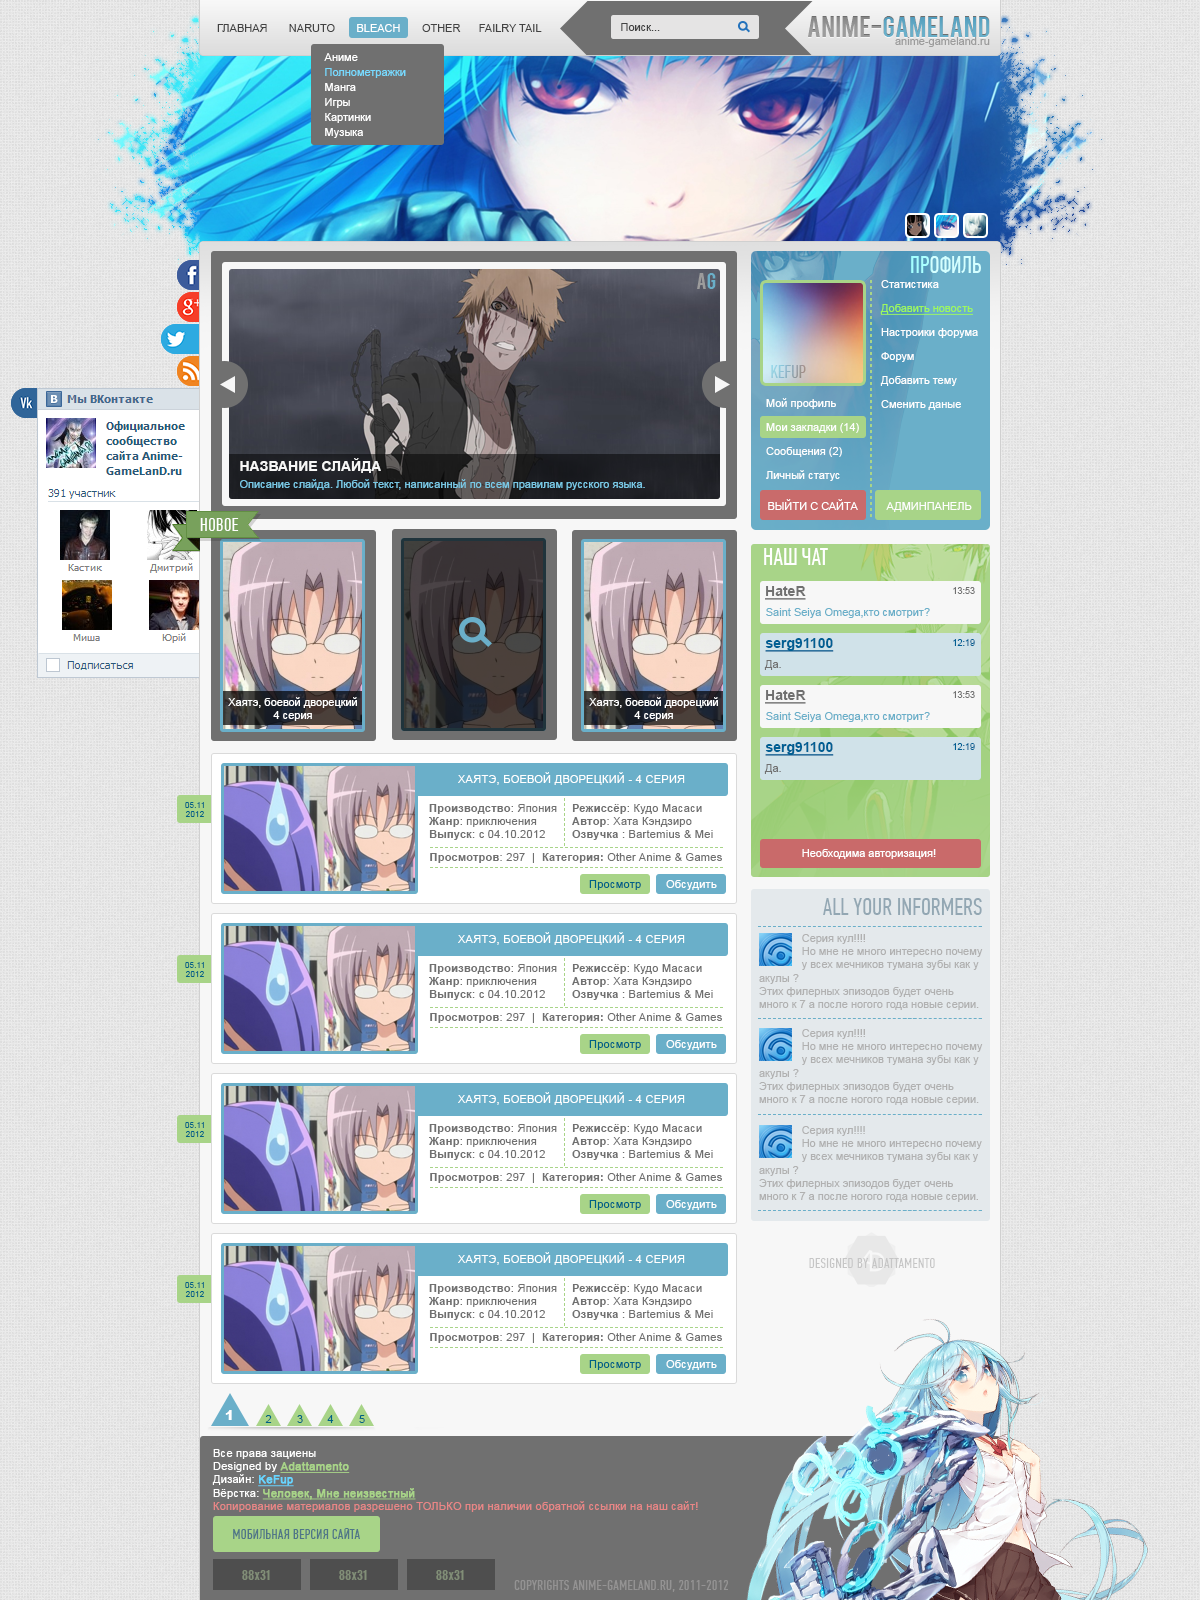 Anime templates – download anime template for a website